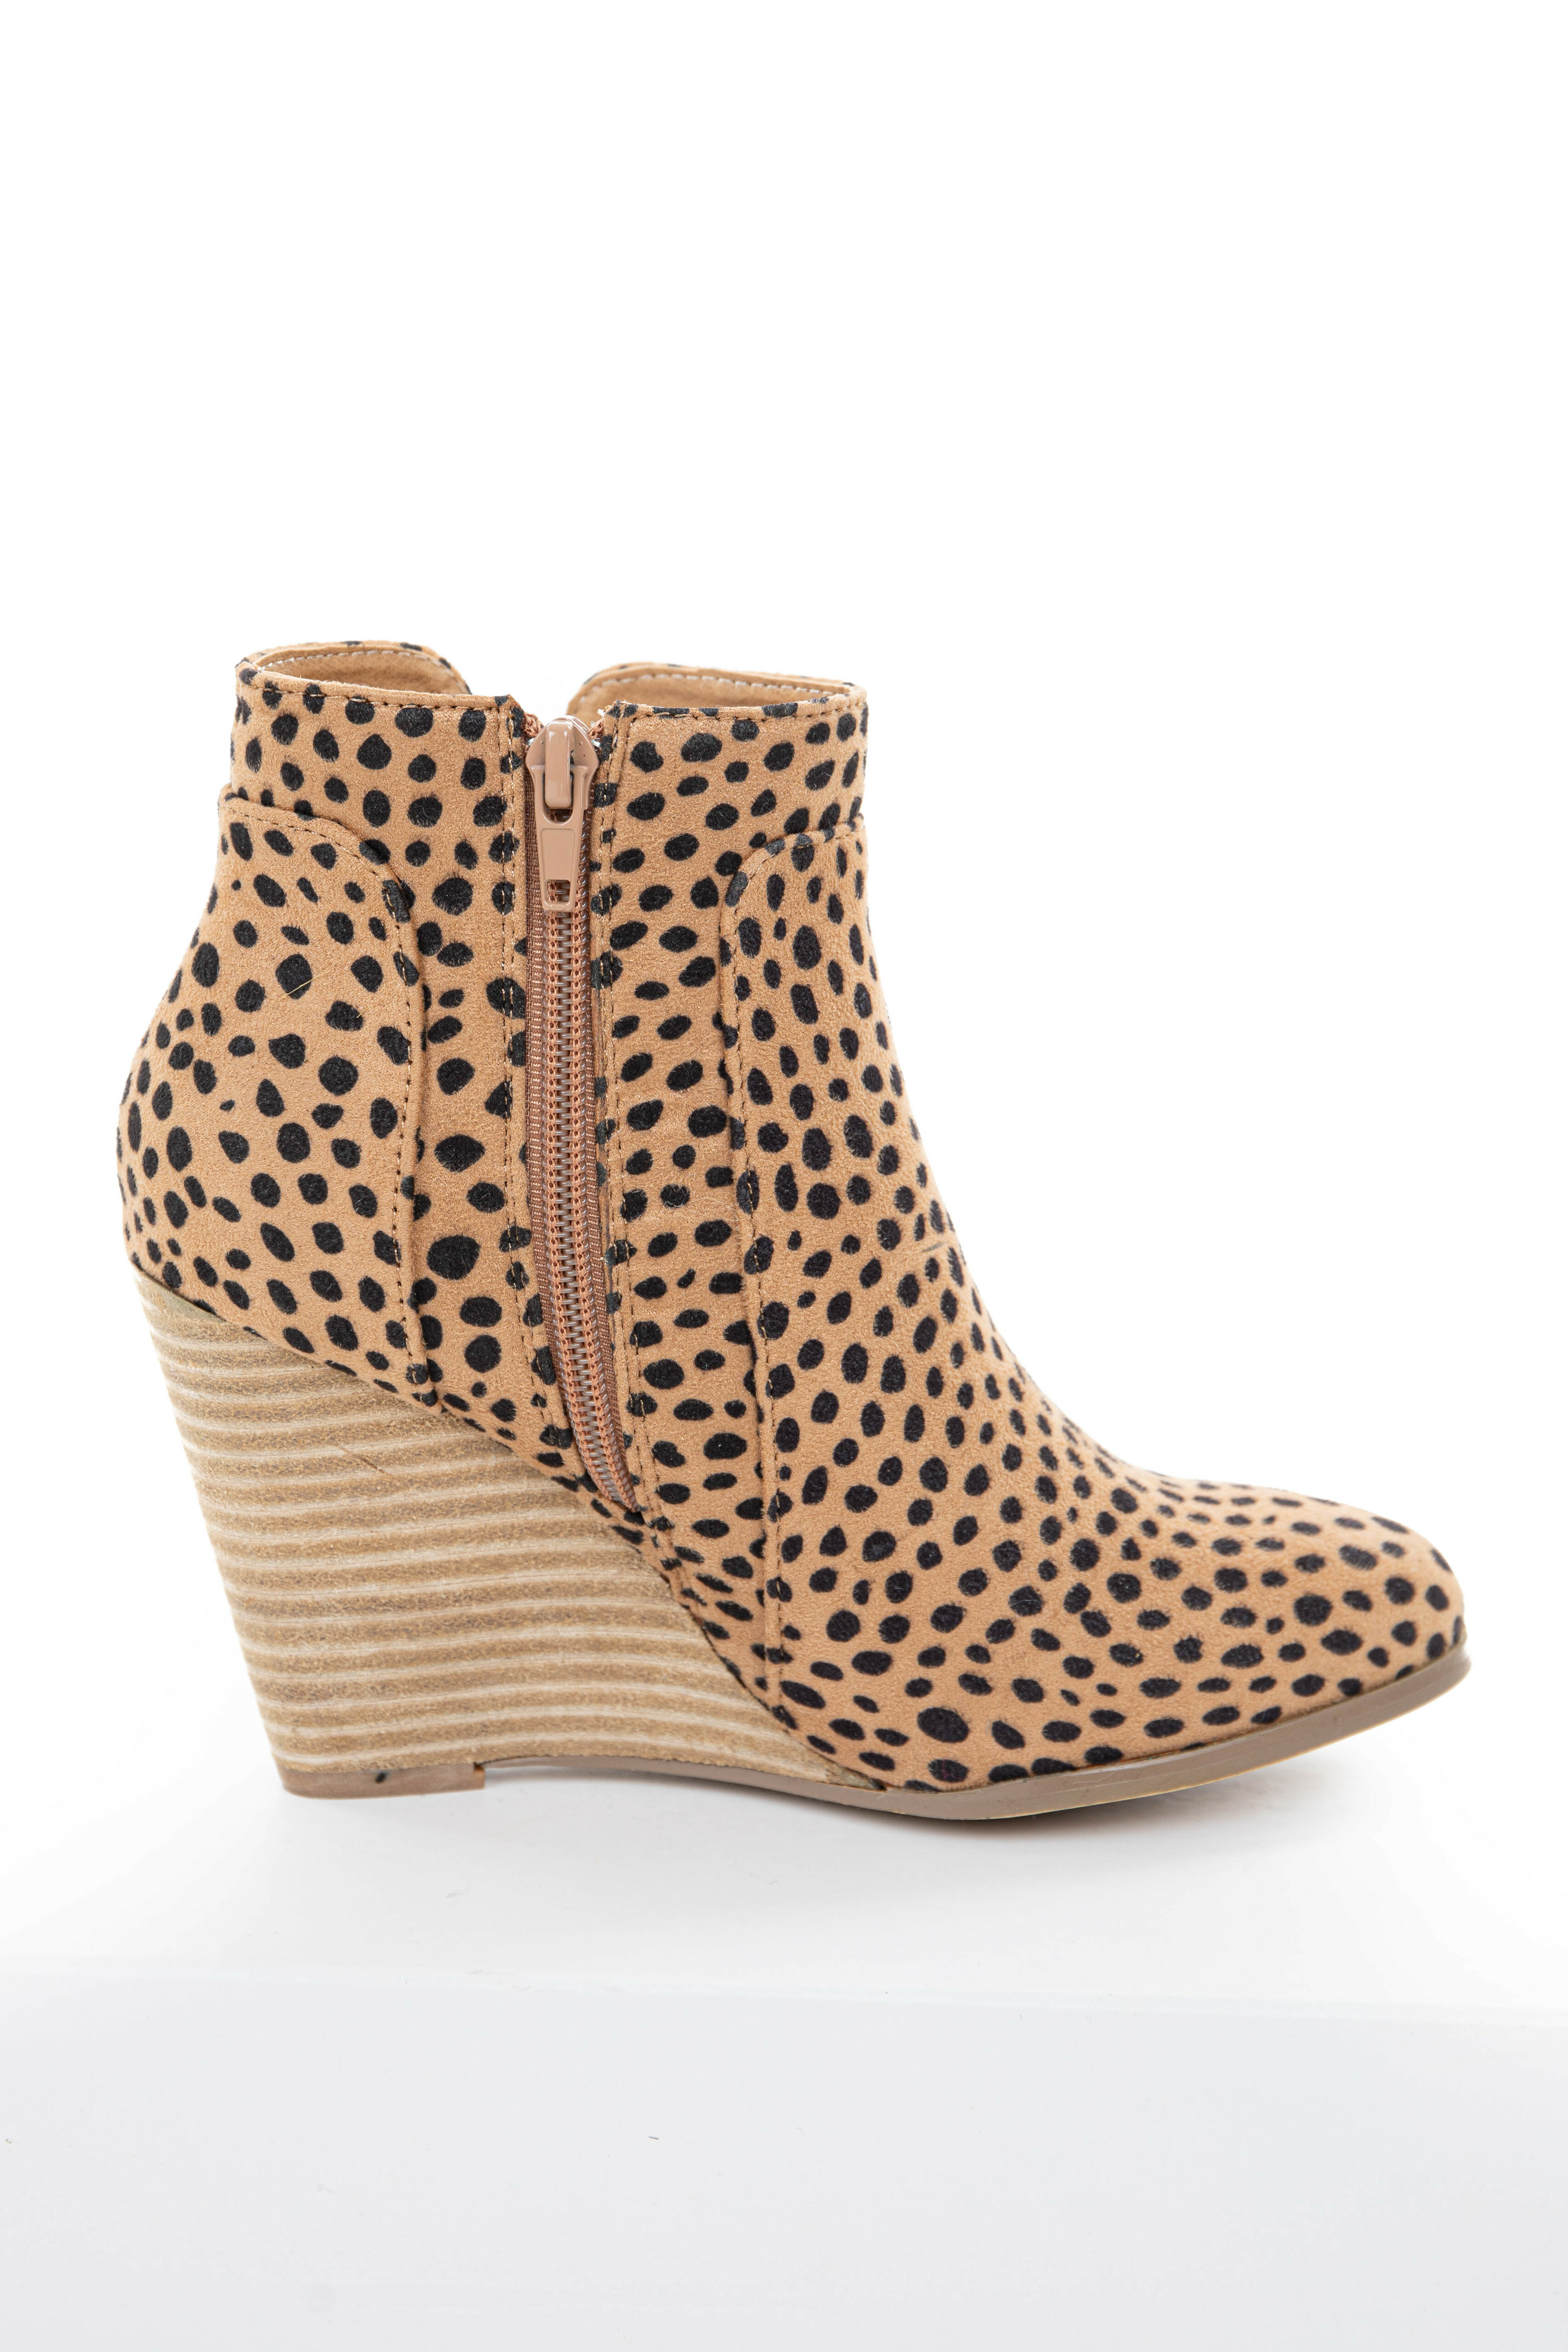 Camel and Black Cheetah Print Faux Suede Wedge Bootie